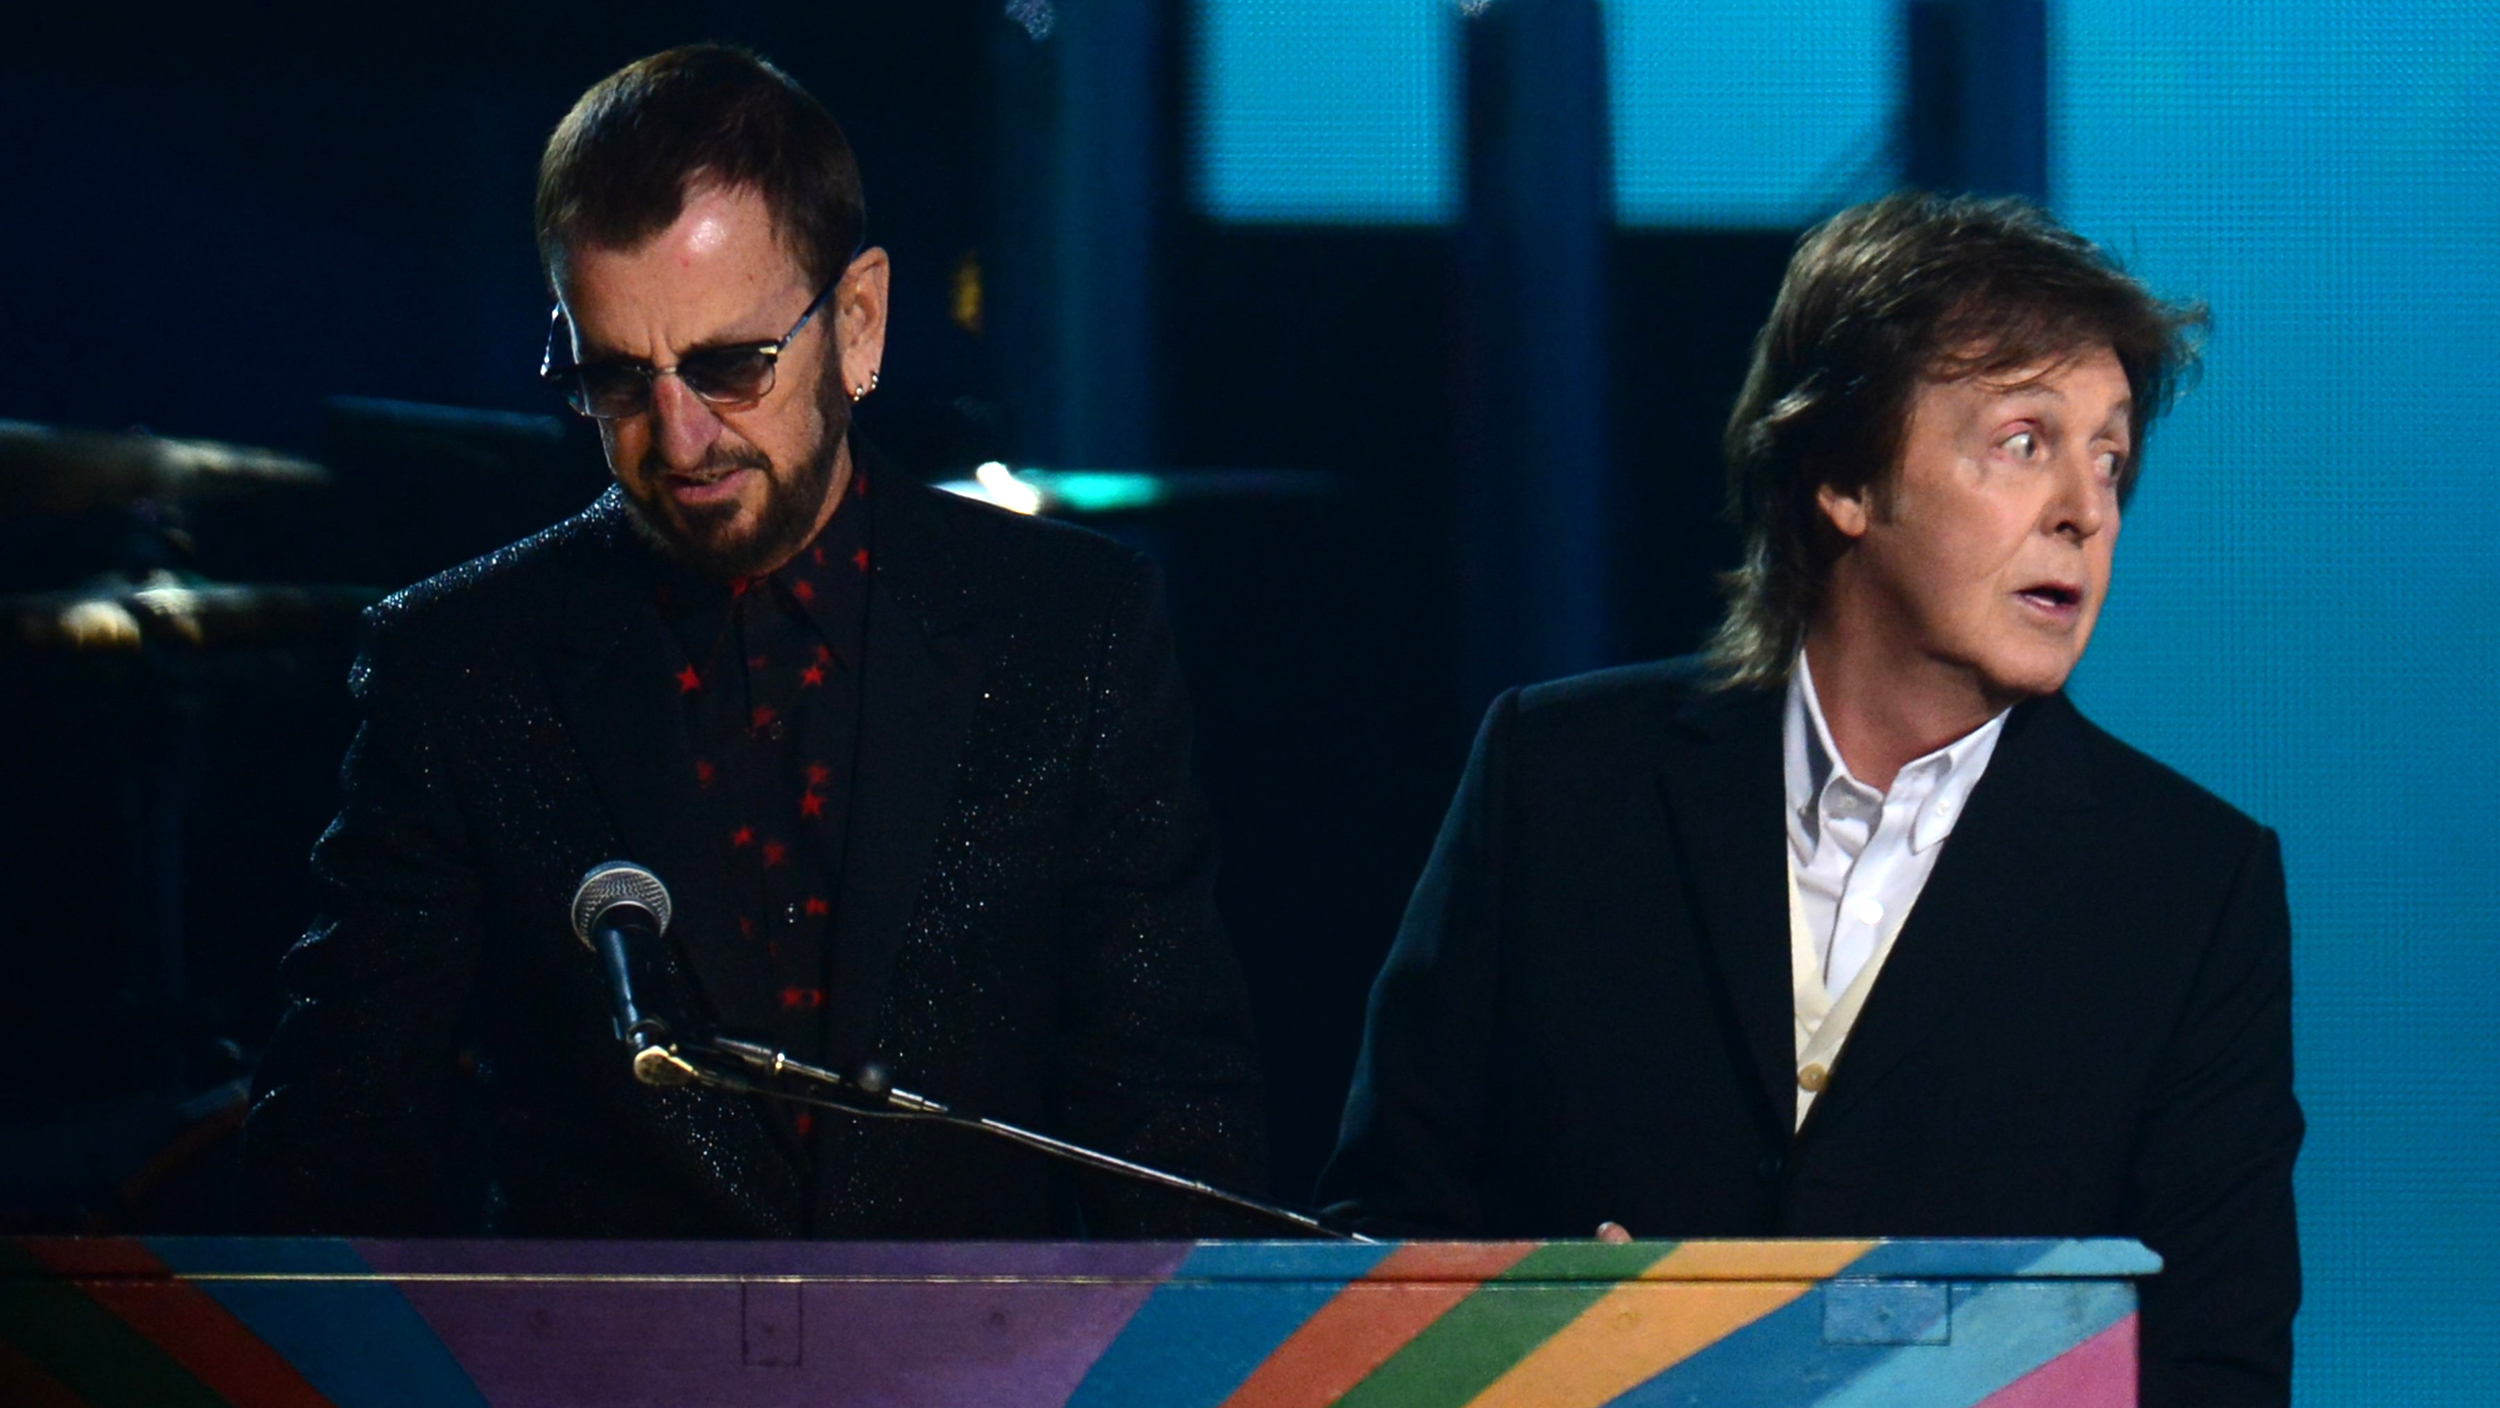 Former Beatles members Paul McCartney (R) and Ringo Star perform on stage during the 56th Grammy Awards at the Staples Center in Los Angeles, Californ...